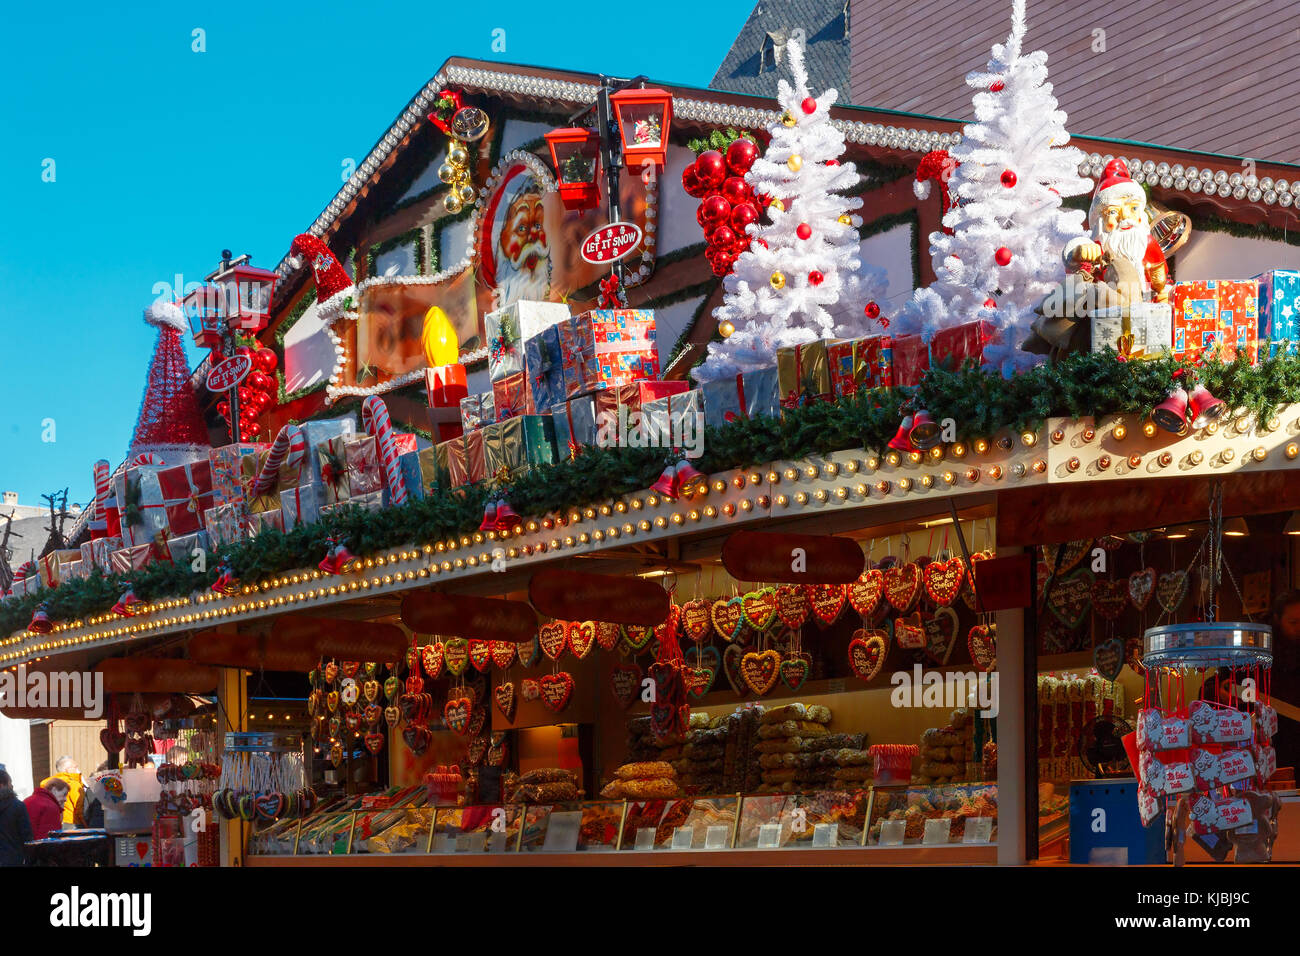 Christmas Market in Strasbourg, Alsace, France - Stock Image